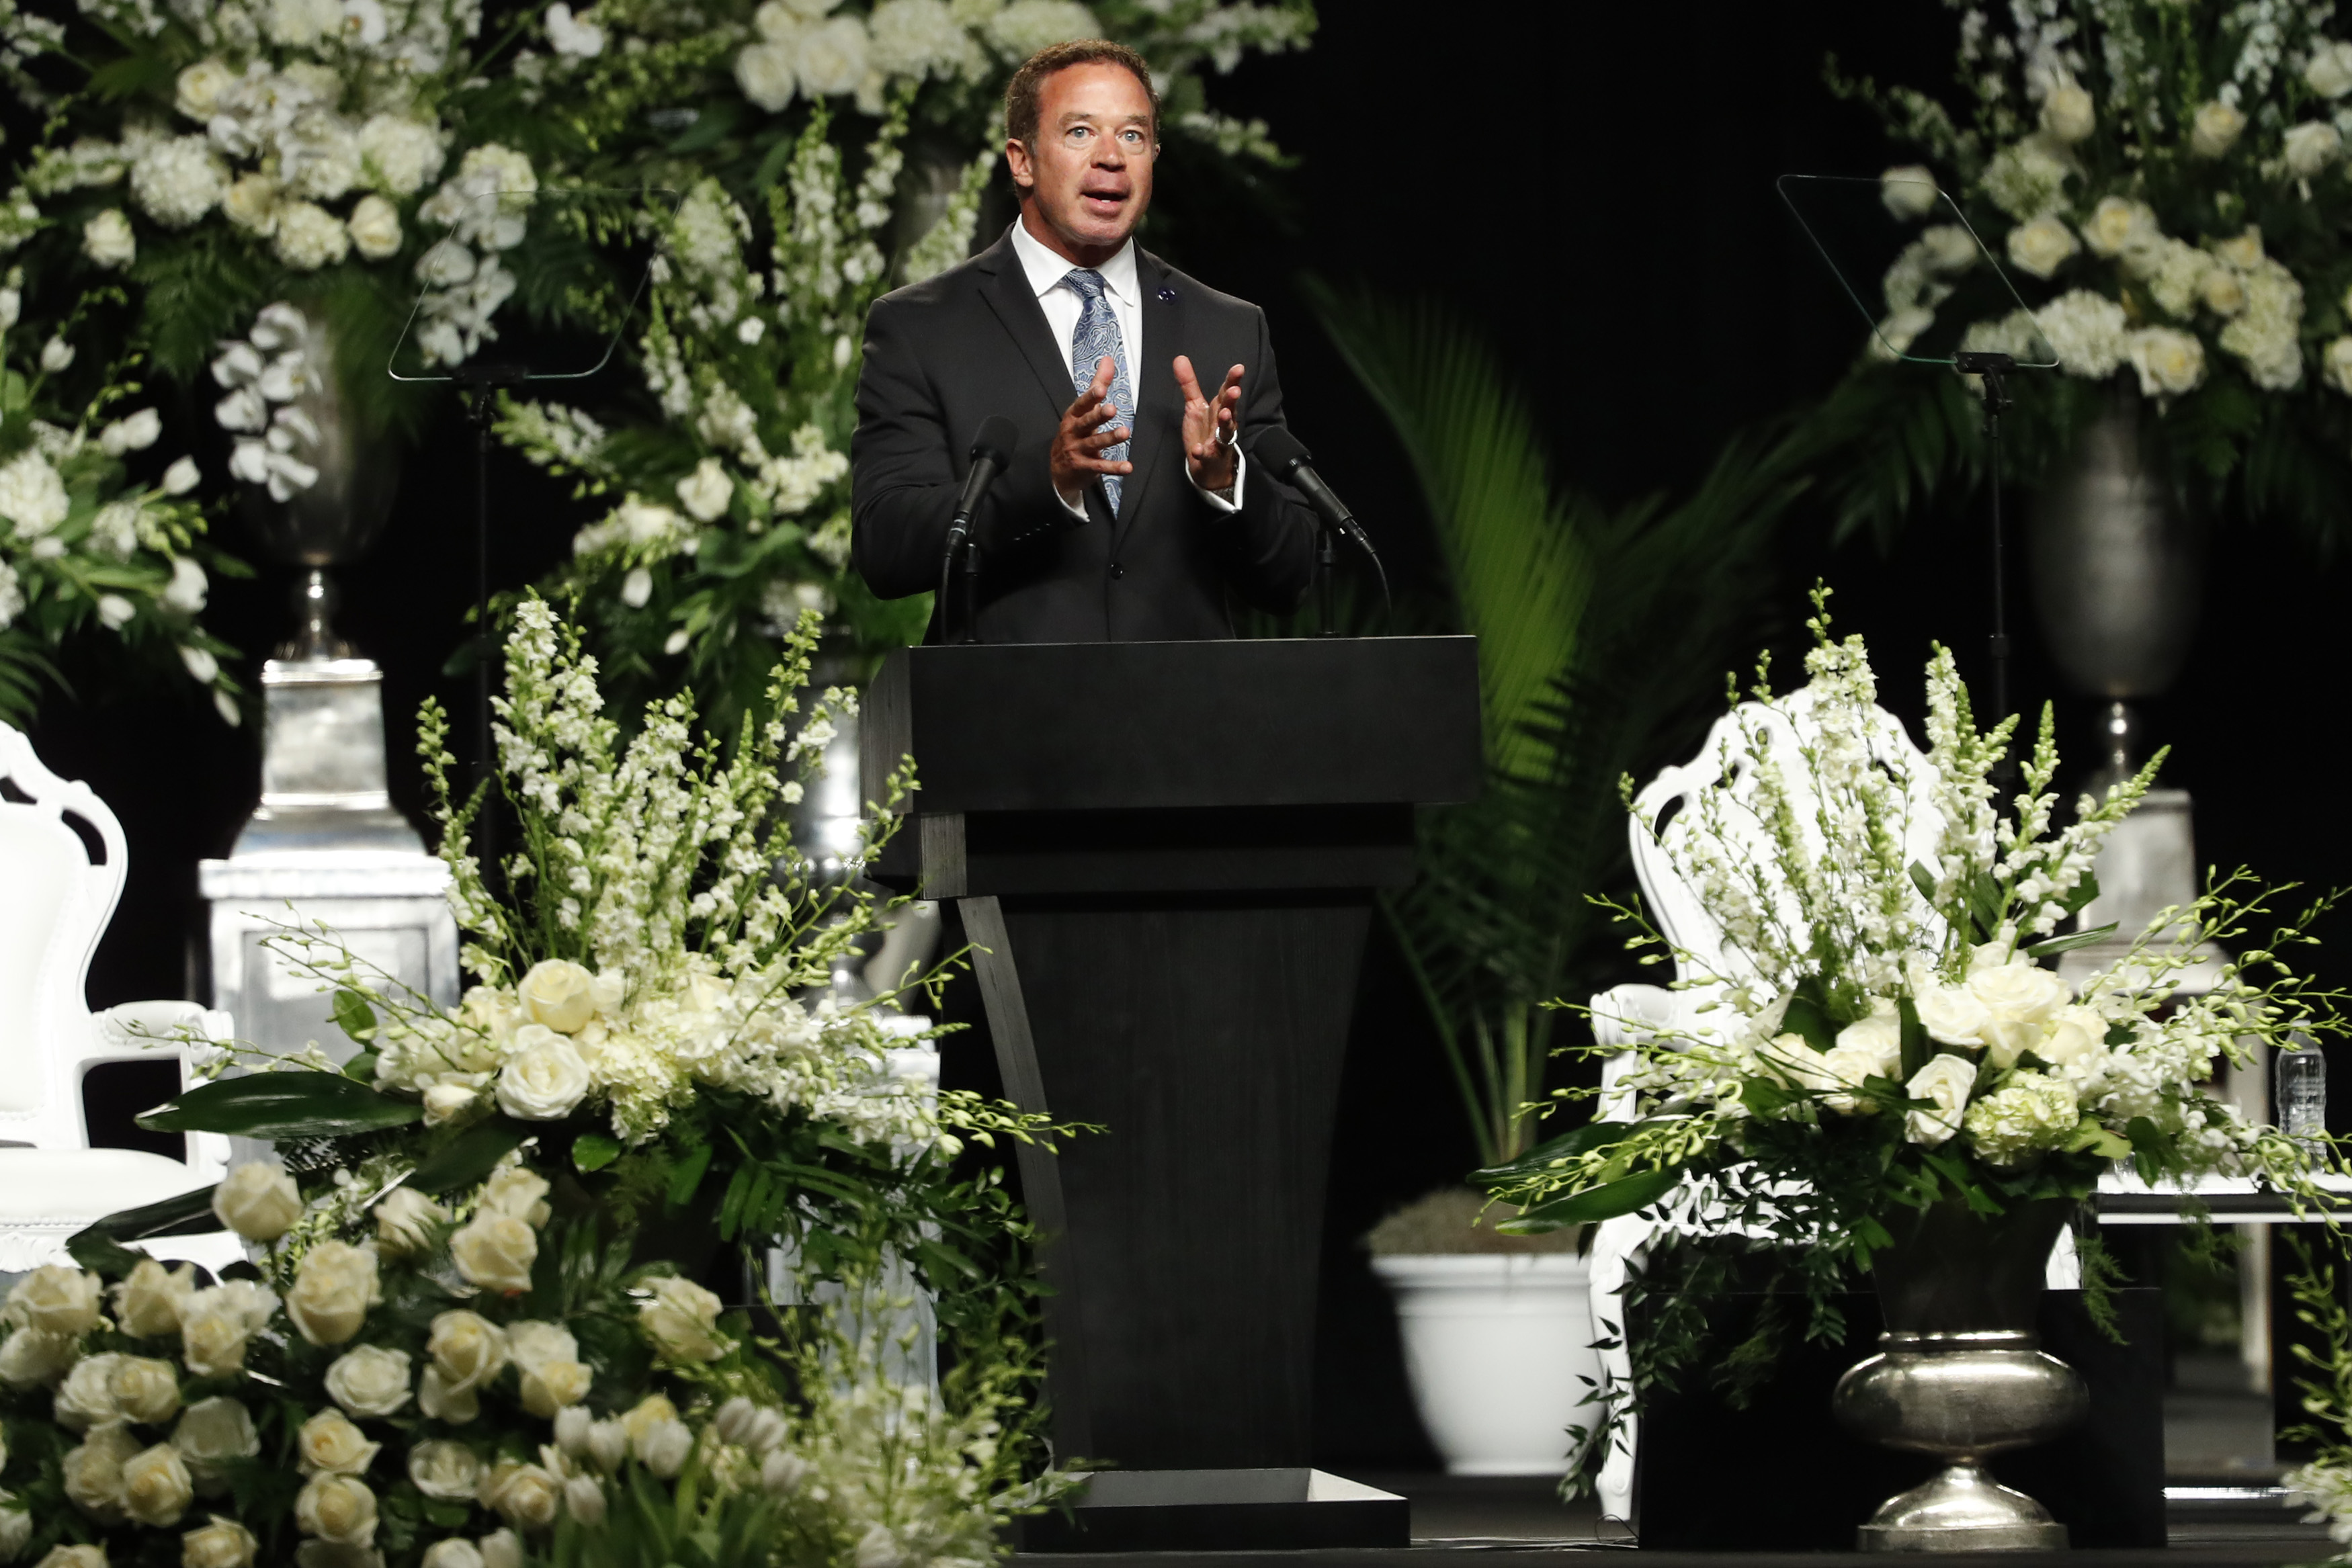 LOUISVILLE, KY - JUNE 10: John Ramsey speaks during a memorial service for boxing legend Muhammad Ali on June 10, 2016 at the KFC Yum! Center in Louisville, Kentucky. Ali died June 3 of complications from Parkinson's disease.   Aaron P. Bernstein/Getty Images/AFP